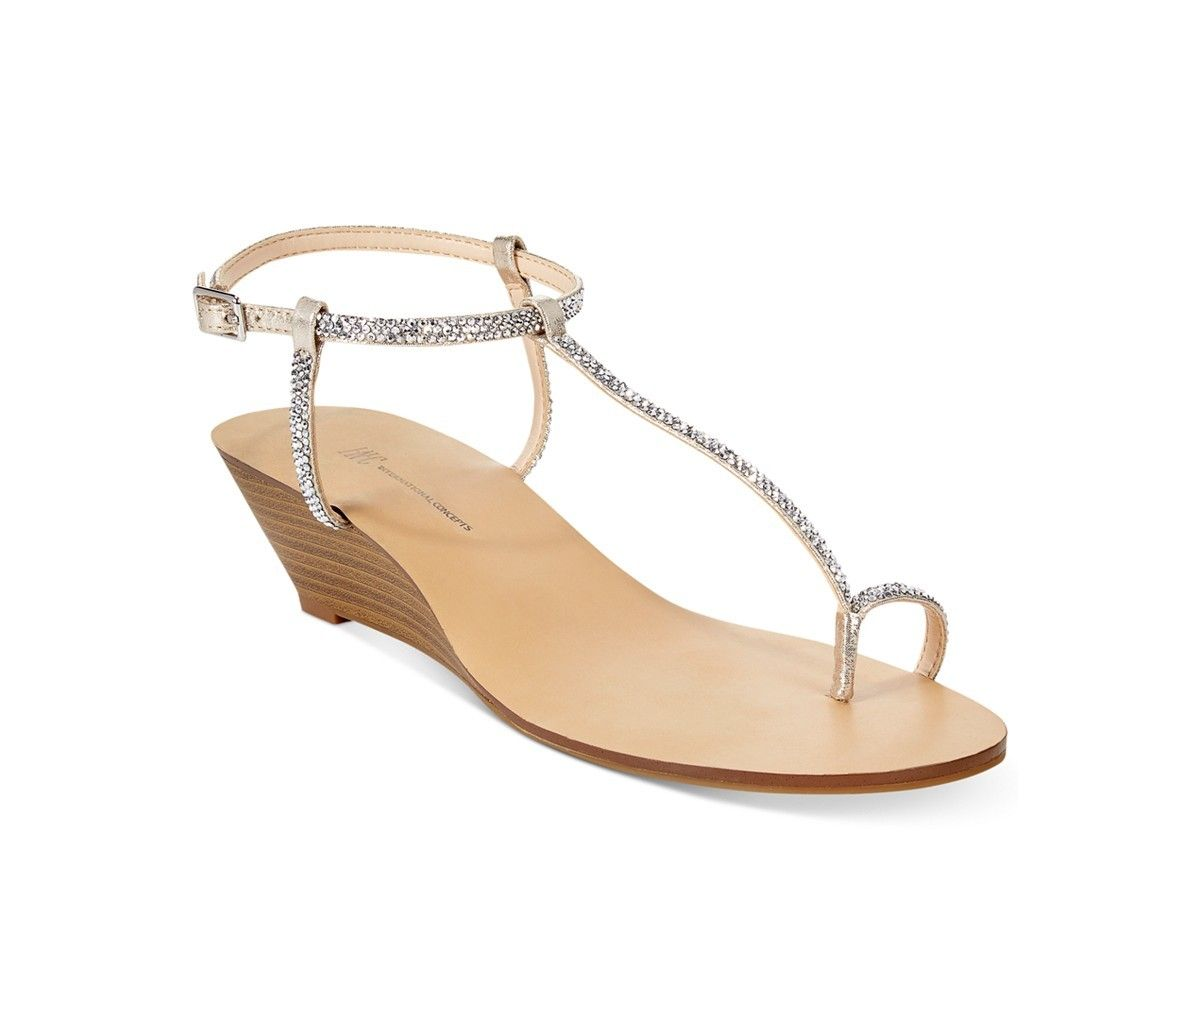 INC International Concepts Women's Mystik Wedge Sandals | A little sparkle and a little heel means a stylish, beautiful sandal that's also really comfortable. via @stylelist